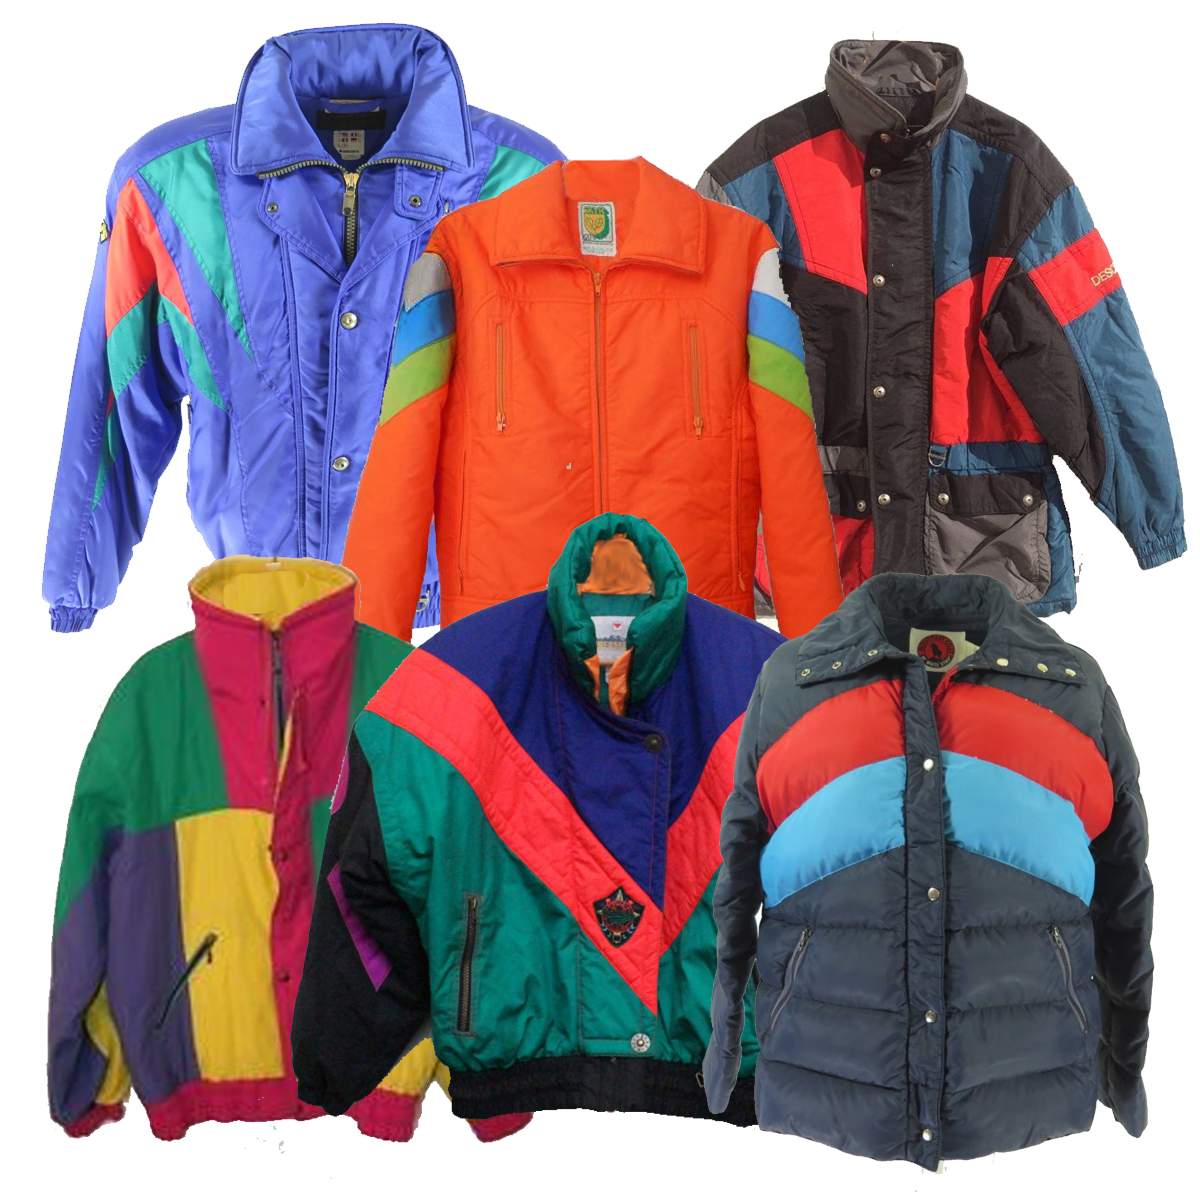 Vintage Ski Jackets Wholesale